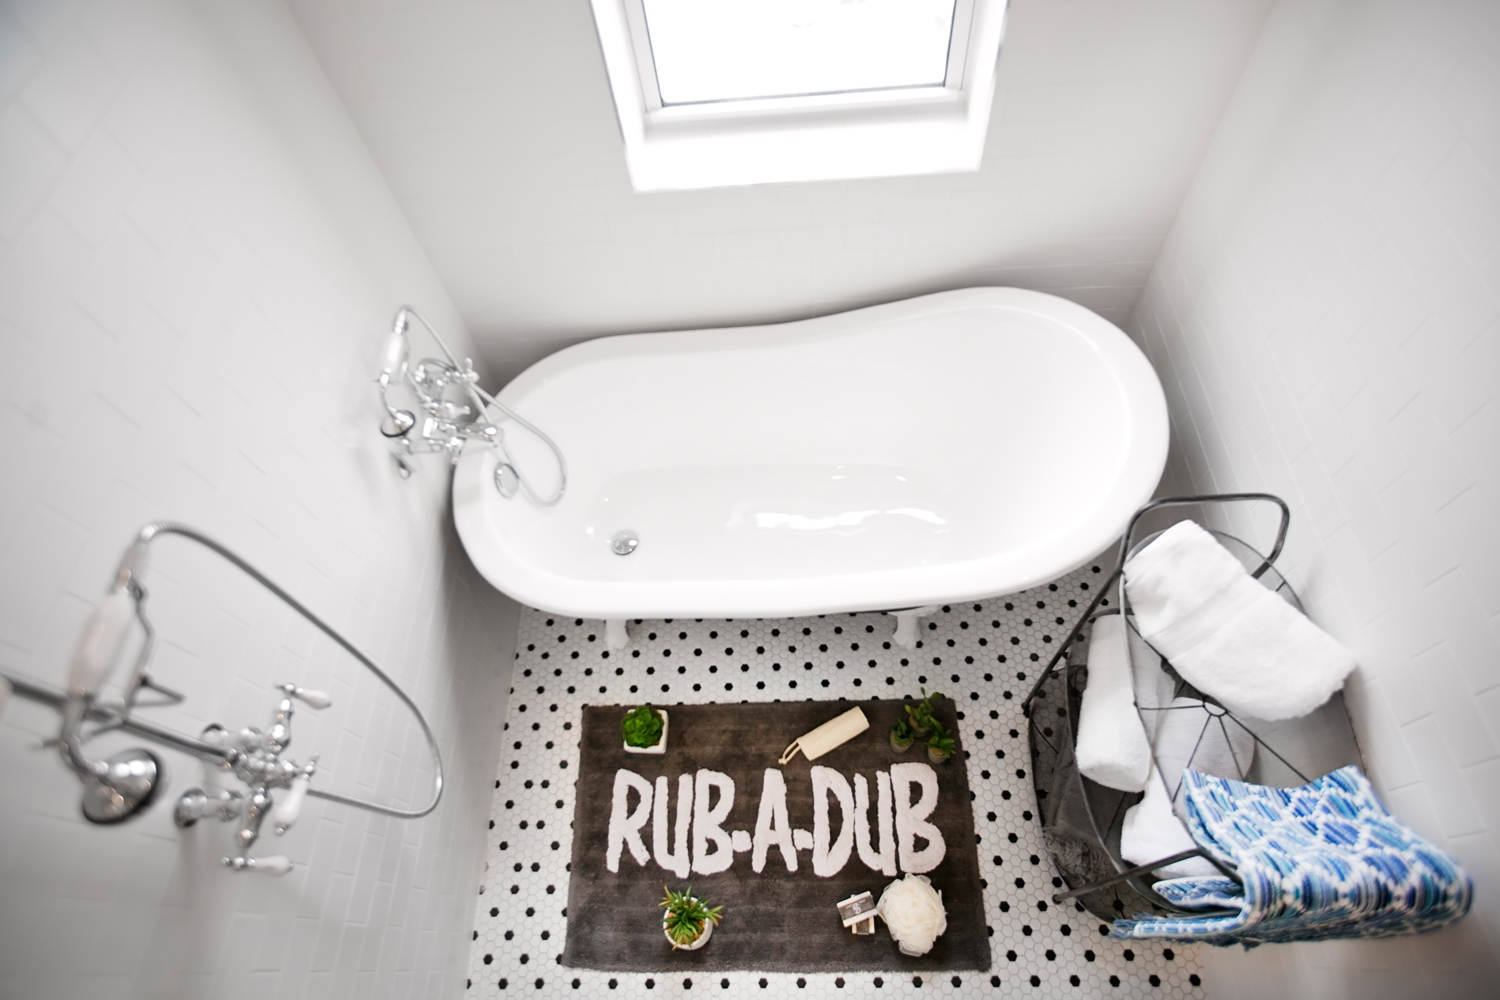 THE BATHROOM - Vintage Rub-a-dub!